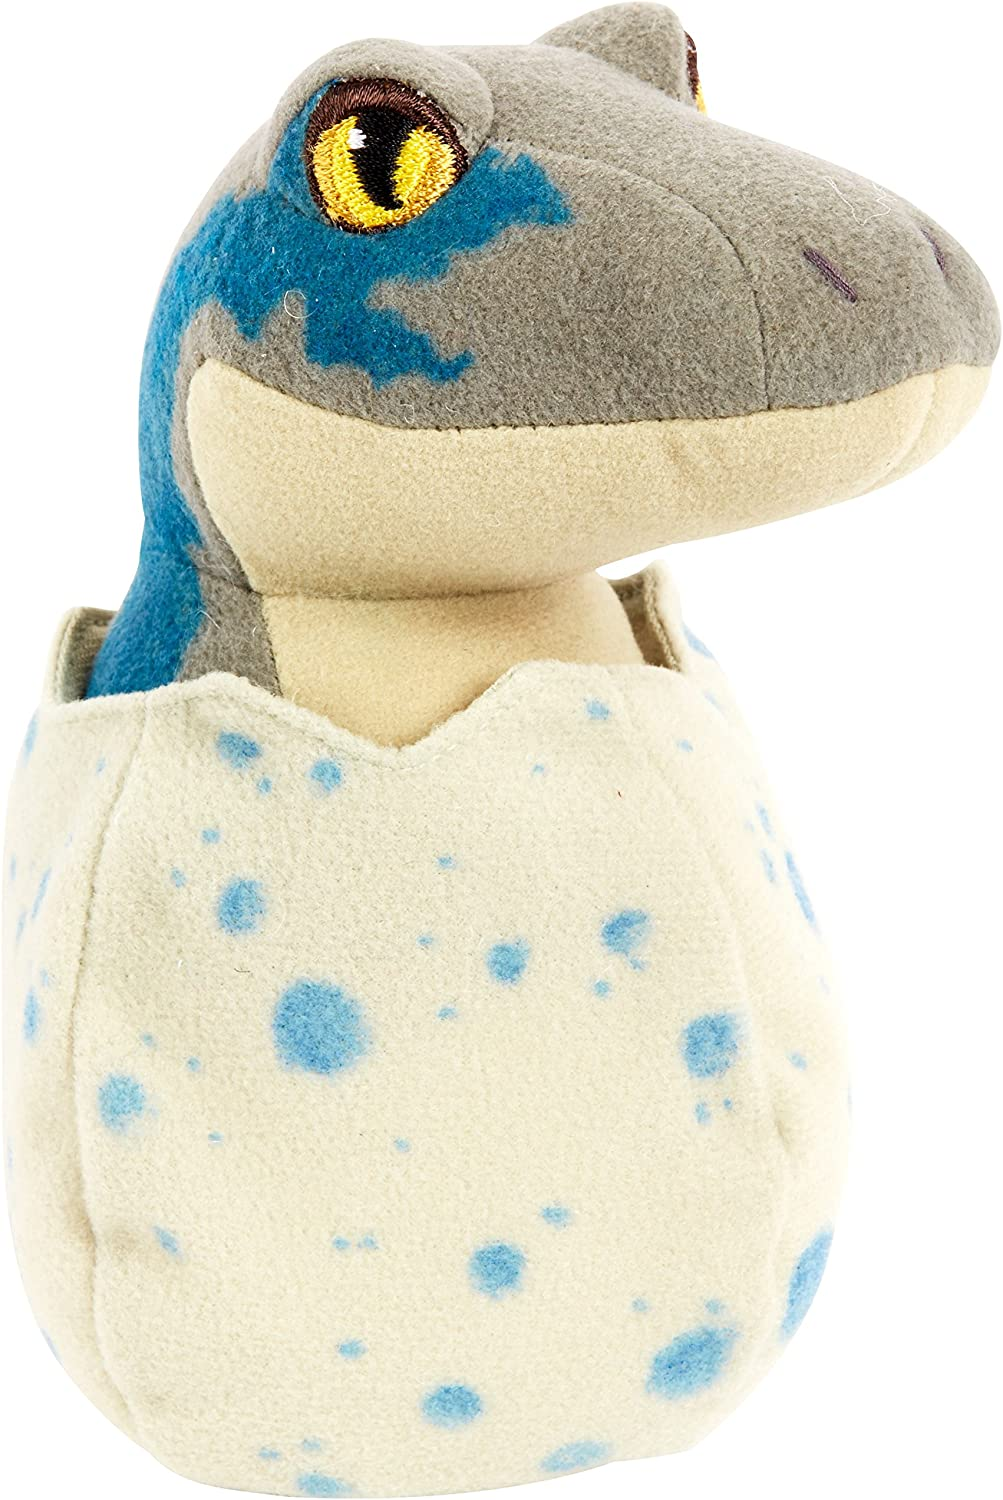 Aurora Monkey Stuffed Animal, 10 Cute Blue Dinosaur Plush Stuffed Animal Jurassic Baby T Rex Raptor